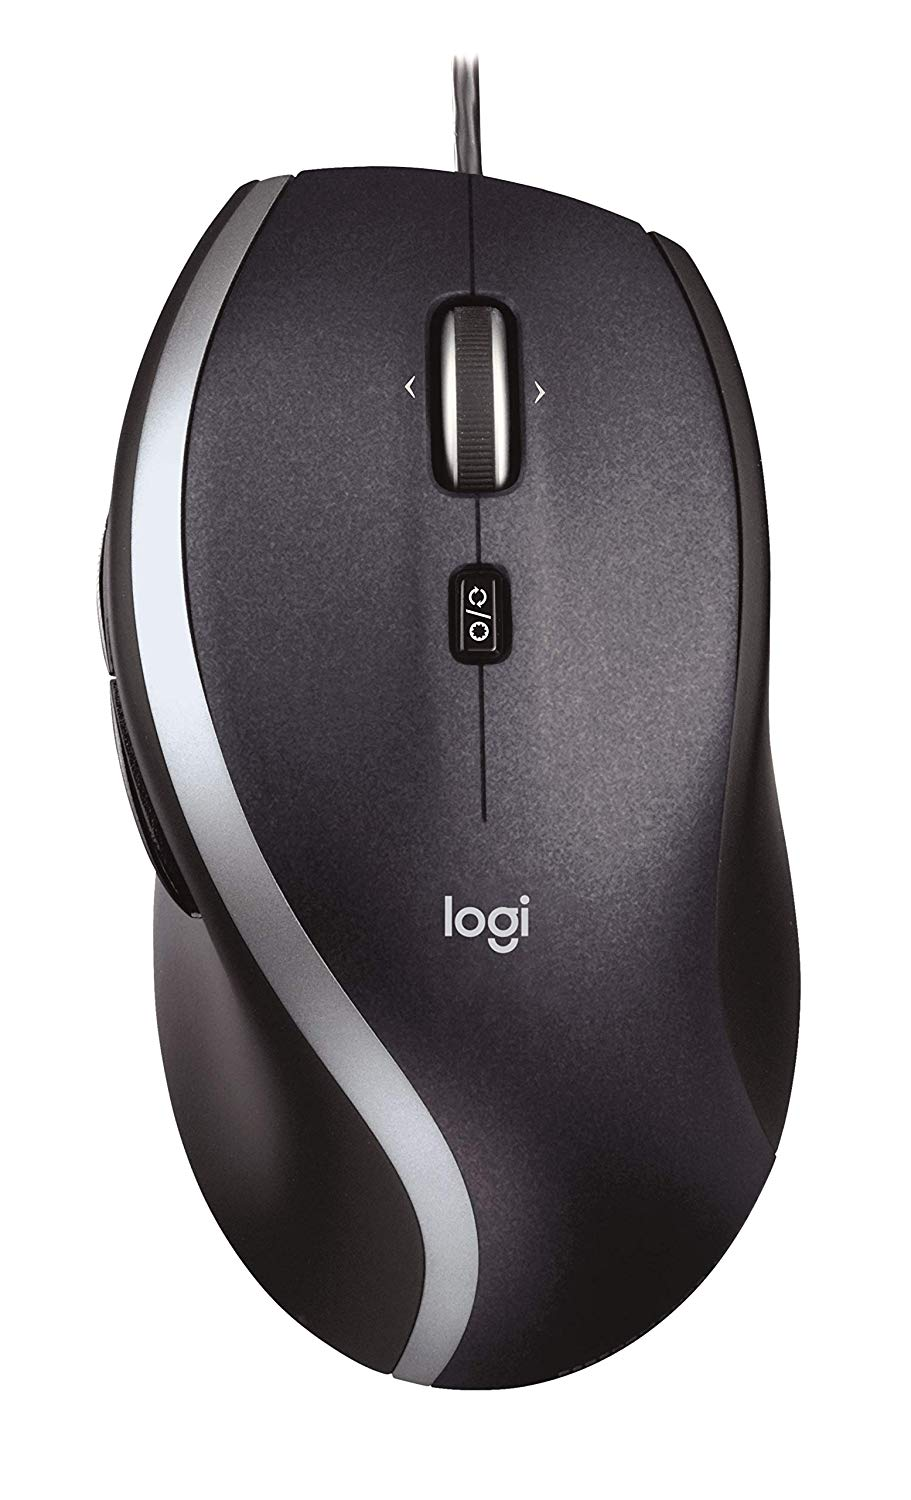 Logitech M500 Corded Mouse for PC - Wired USB Mouse for Computers and Laptops, with Hyper-Fast Scrolling, Dark Gray. Works right out of the box.